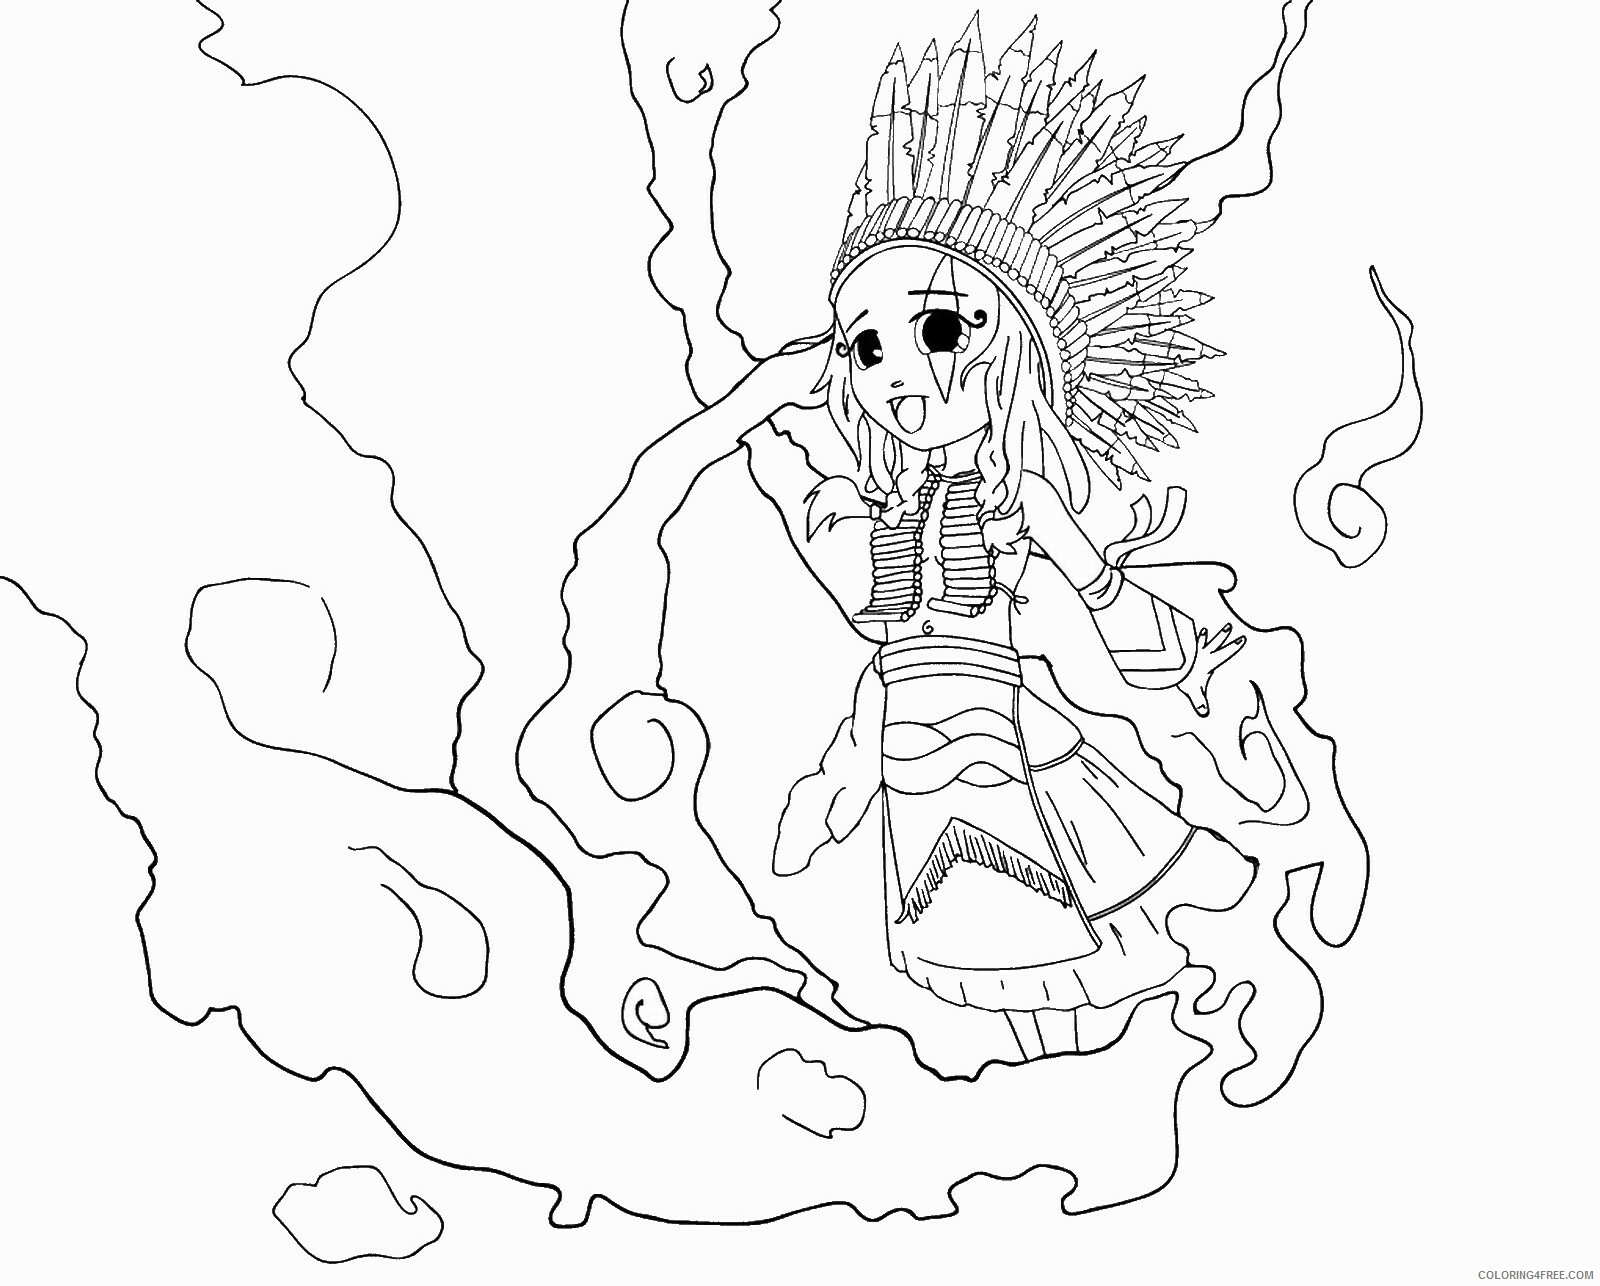 Indian Coloring Pages indians_06 Printable 2021 3544 Coloring4free